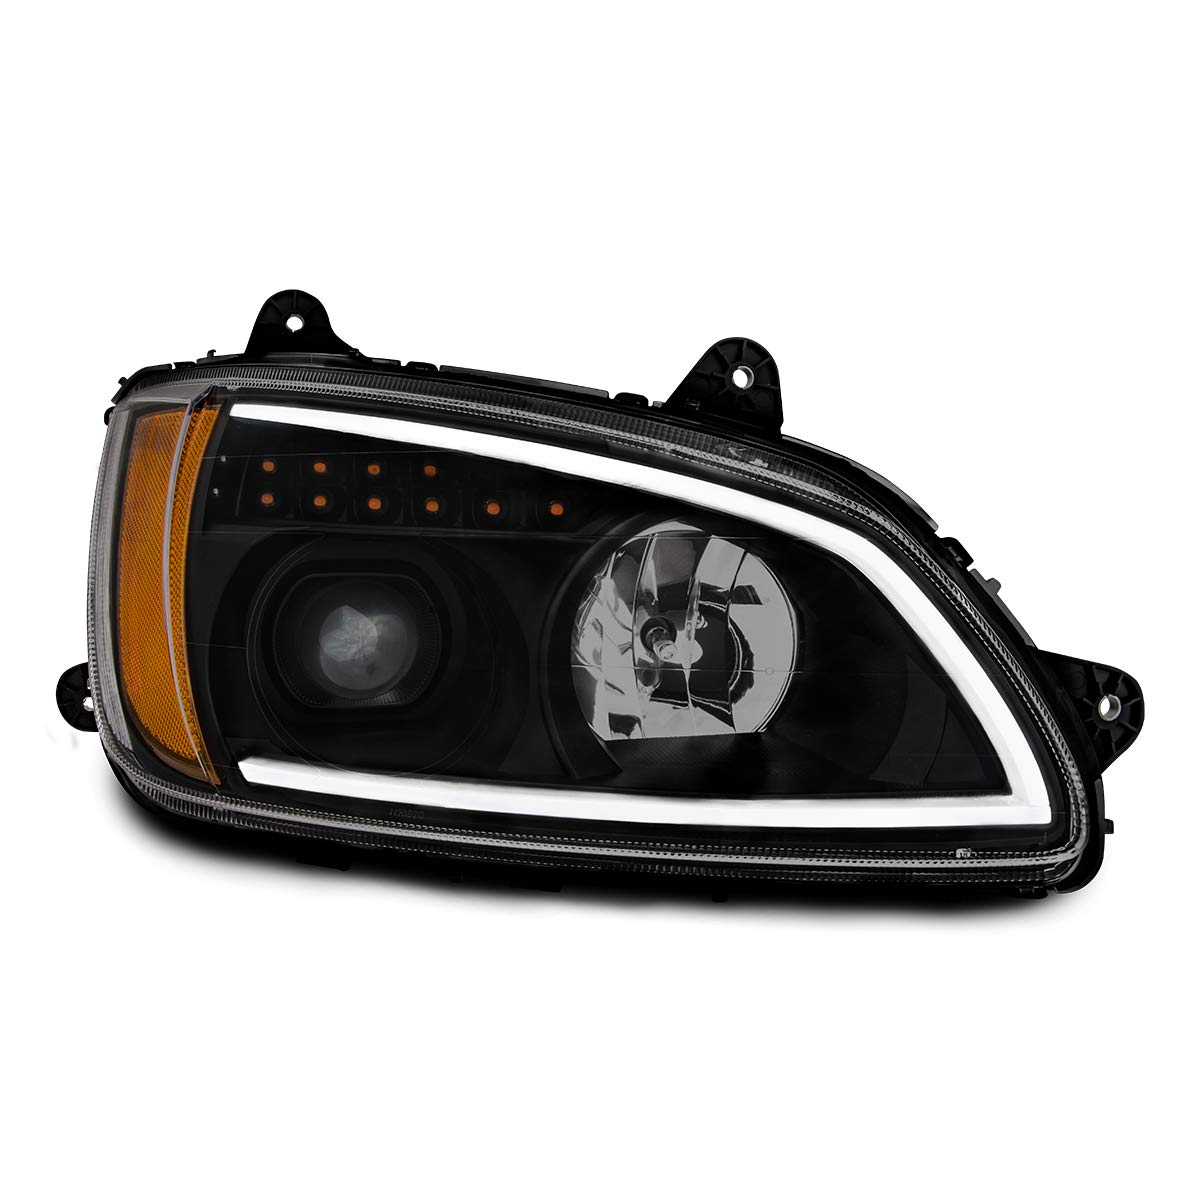 Grand General 89442 Headlight Black Projection with LED Turn//Position, D//S,Kw T660 08+